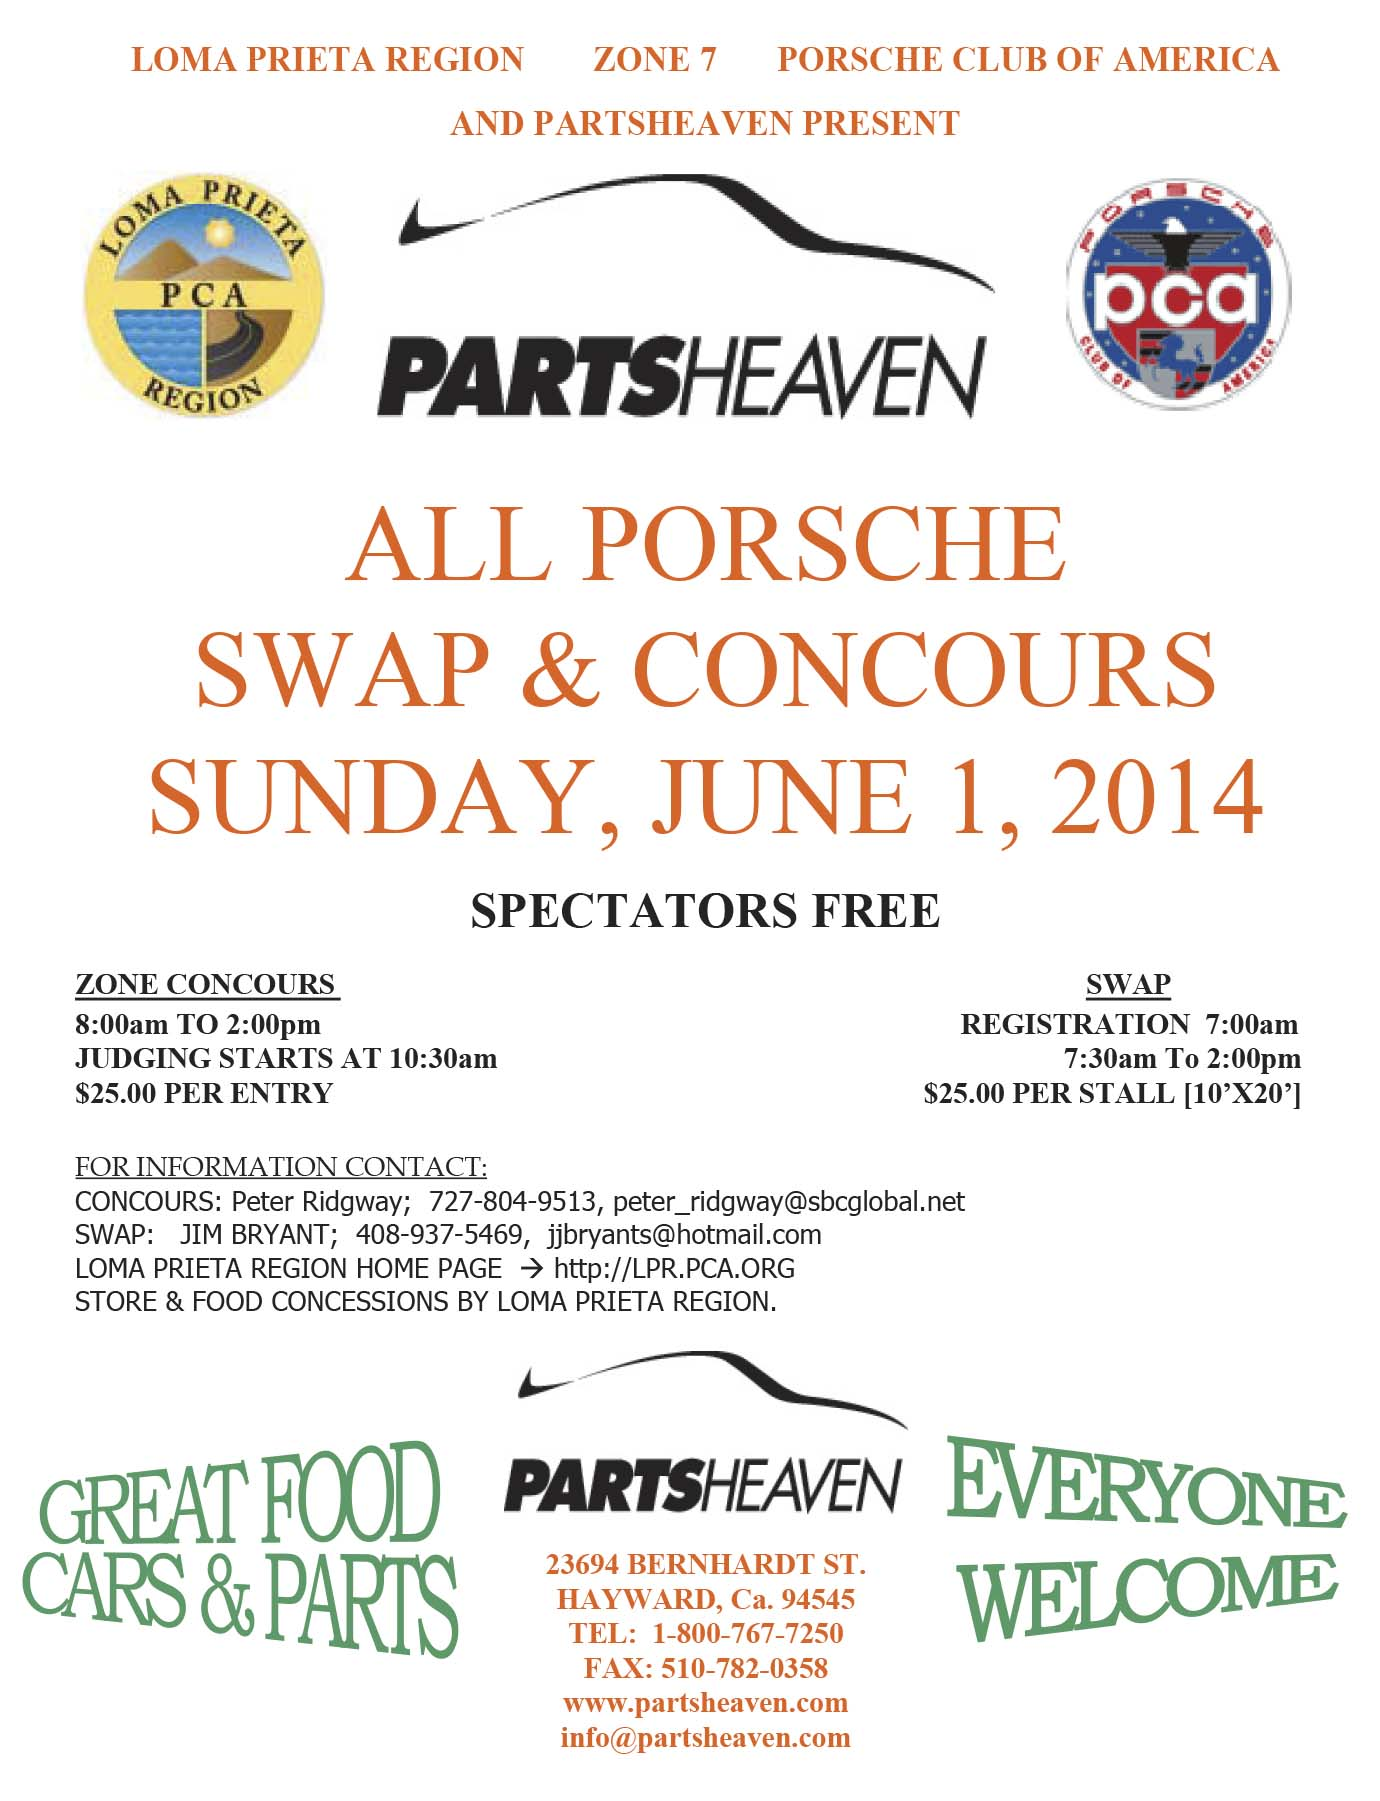 LPR Zone 7 Concours and Swapmeet